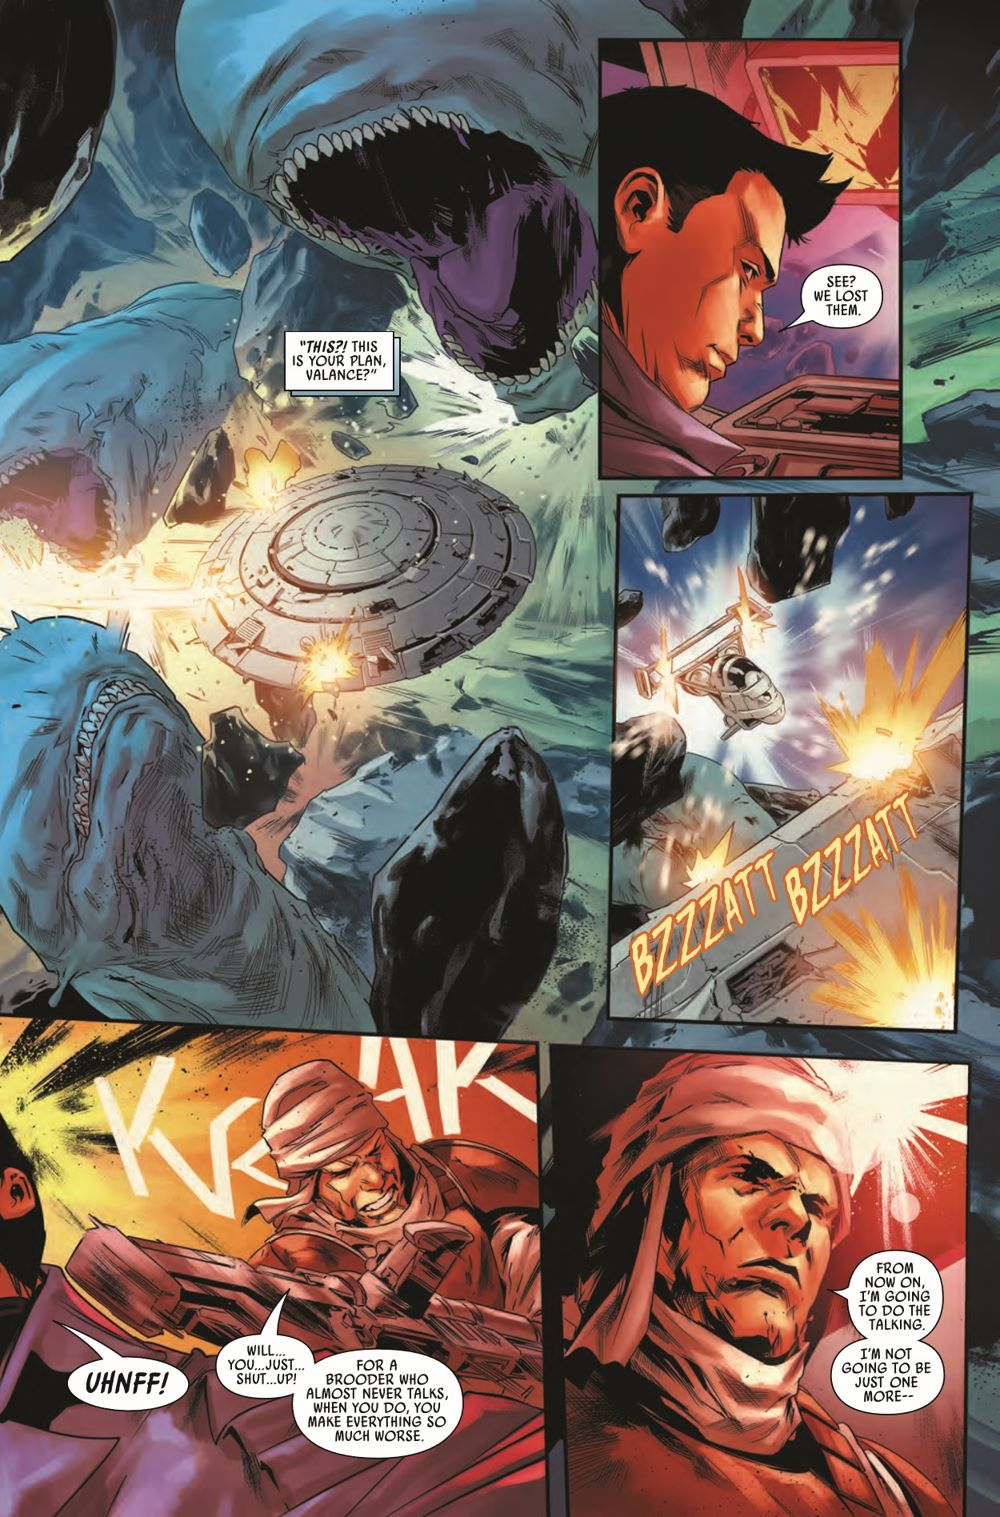 STWBOUNTYHUNT2020012_Preview-4 ComicList Previews: STAR WARS BOUNTY HUNTERS #12